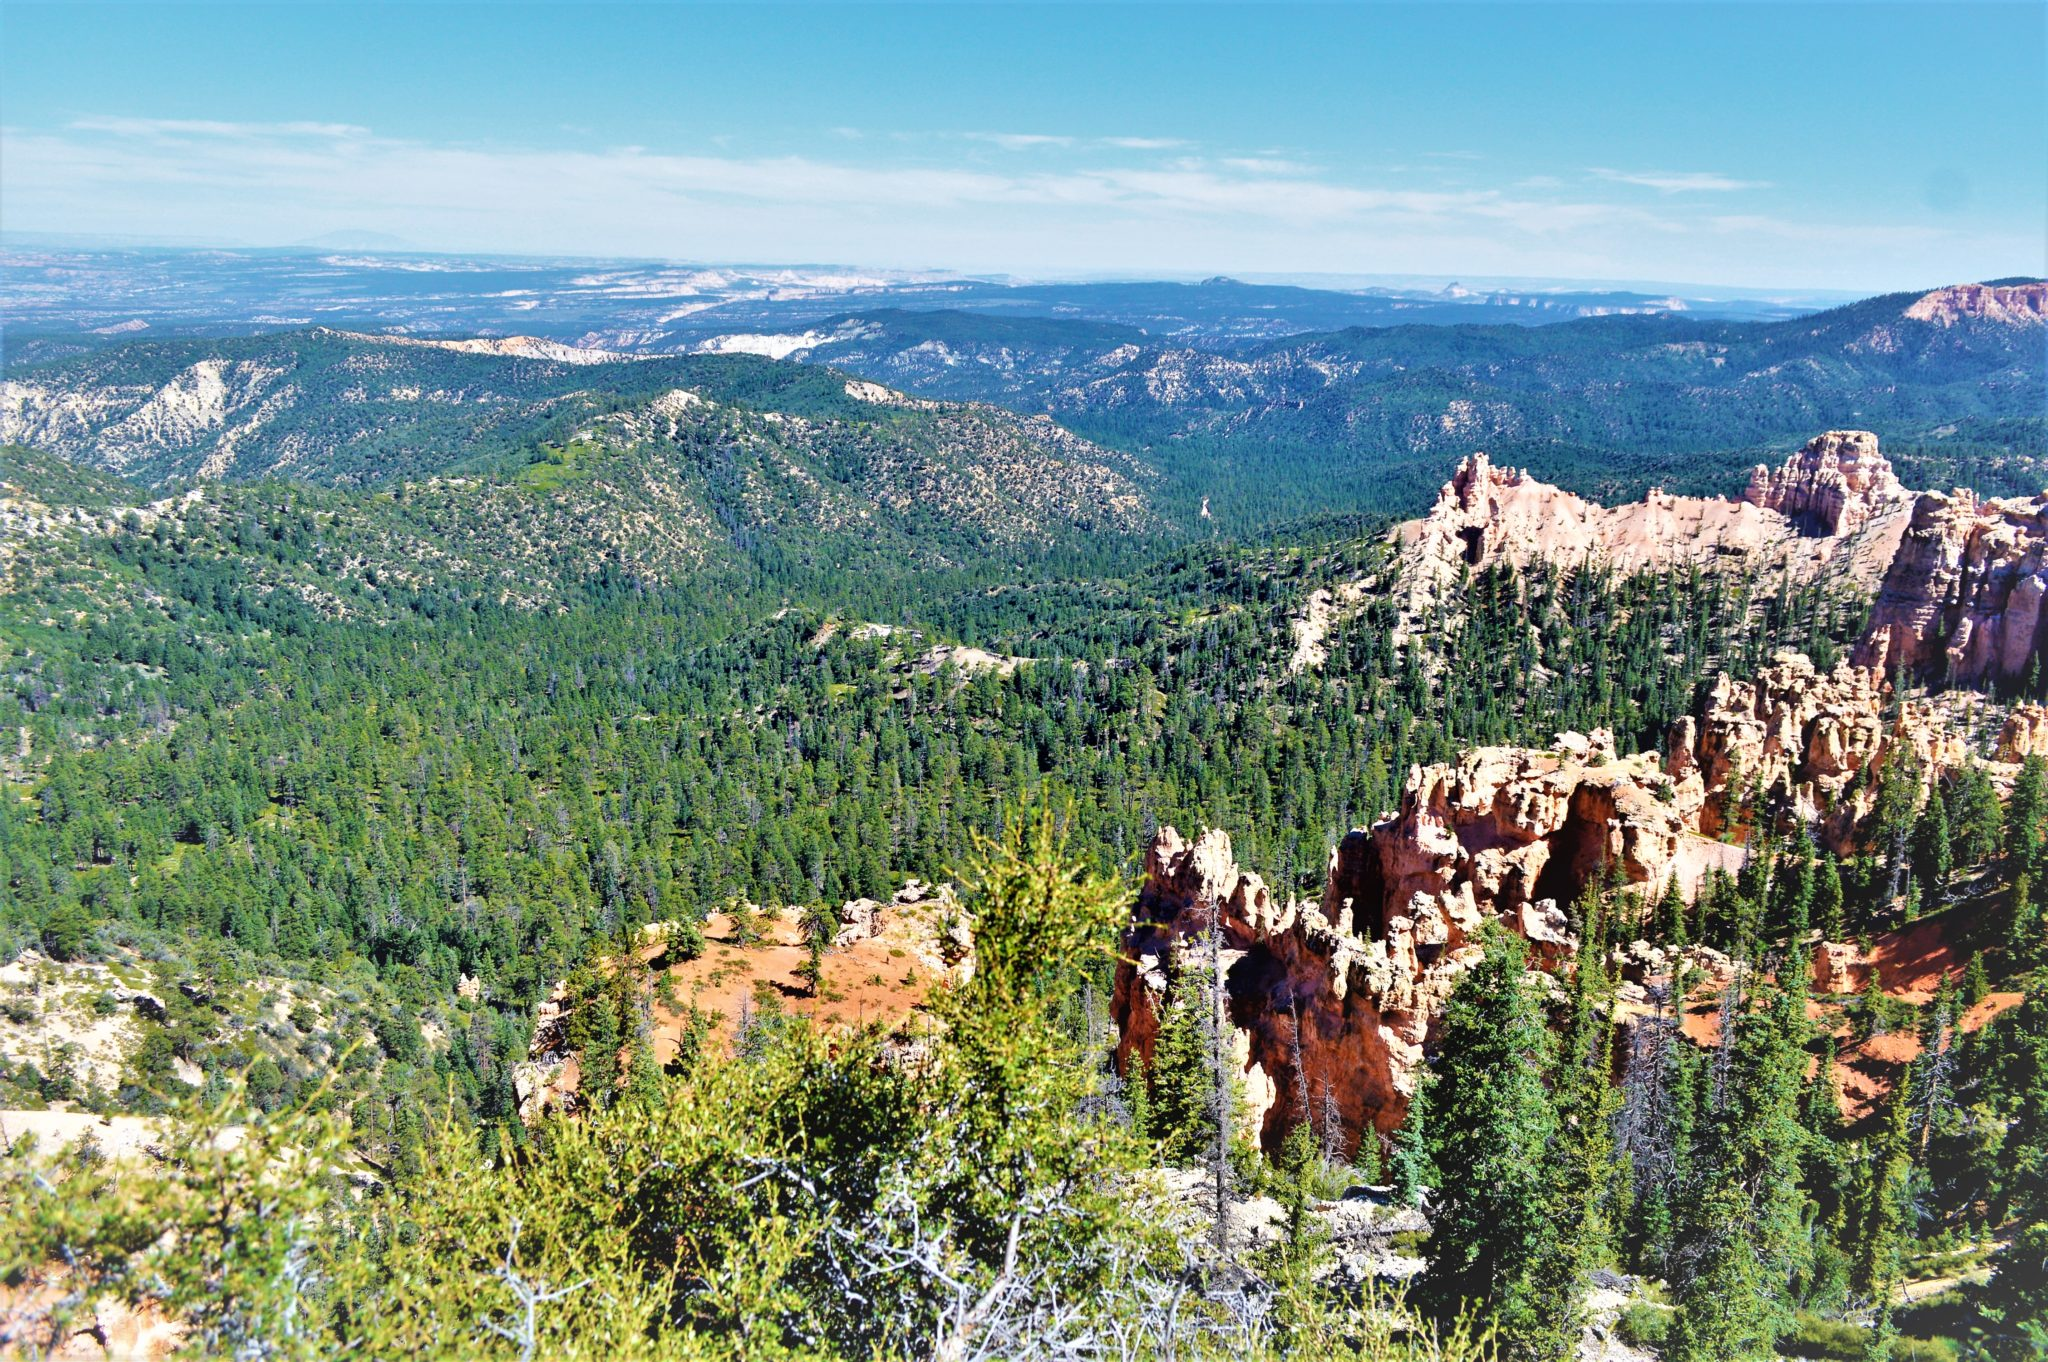 Farview Point, Bryce Canyon National Park, USA